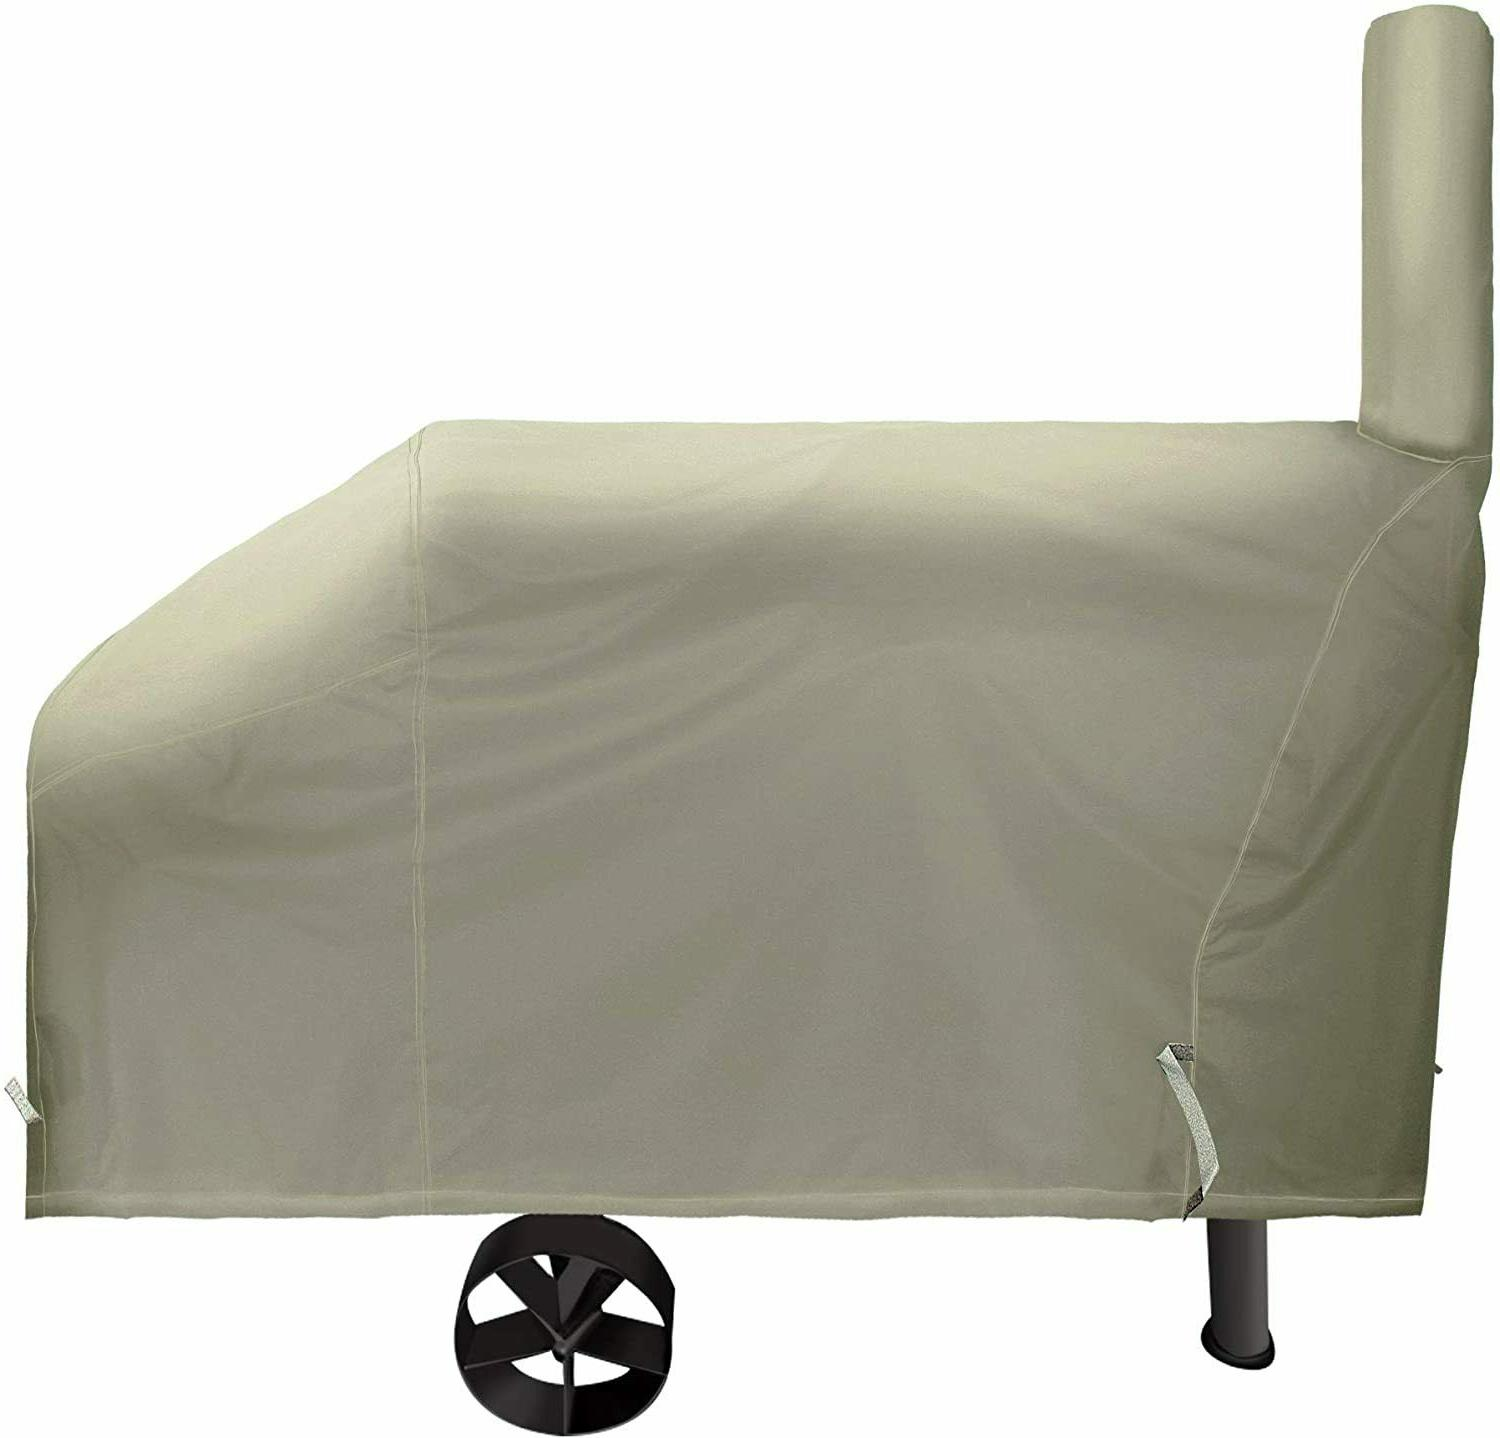 66 inch bbq barbecue smoker grill cover